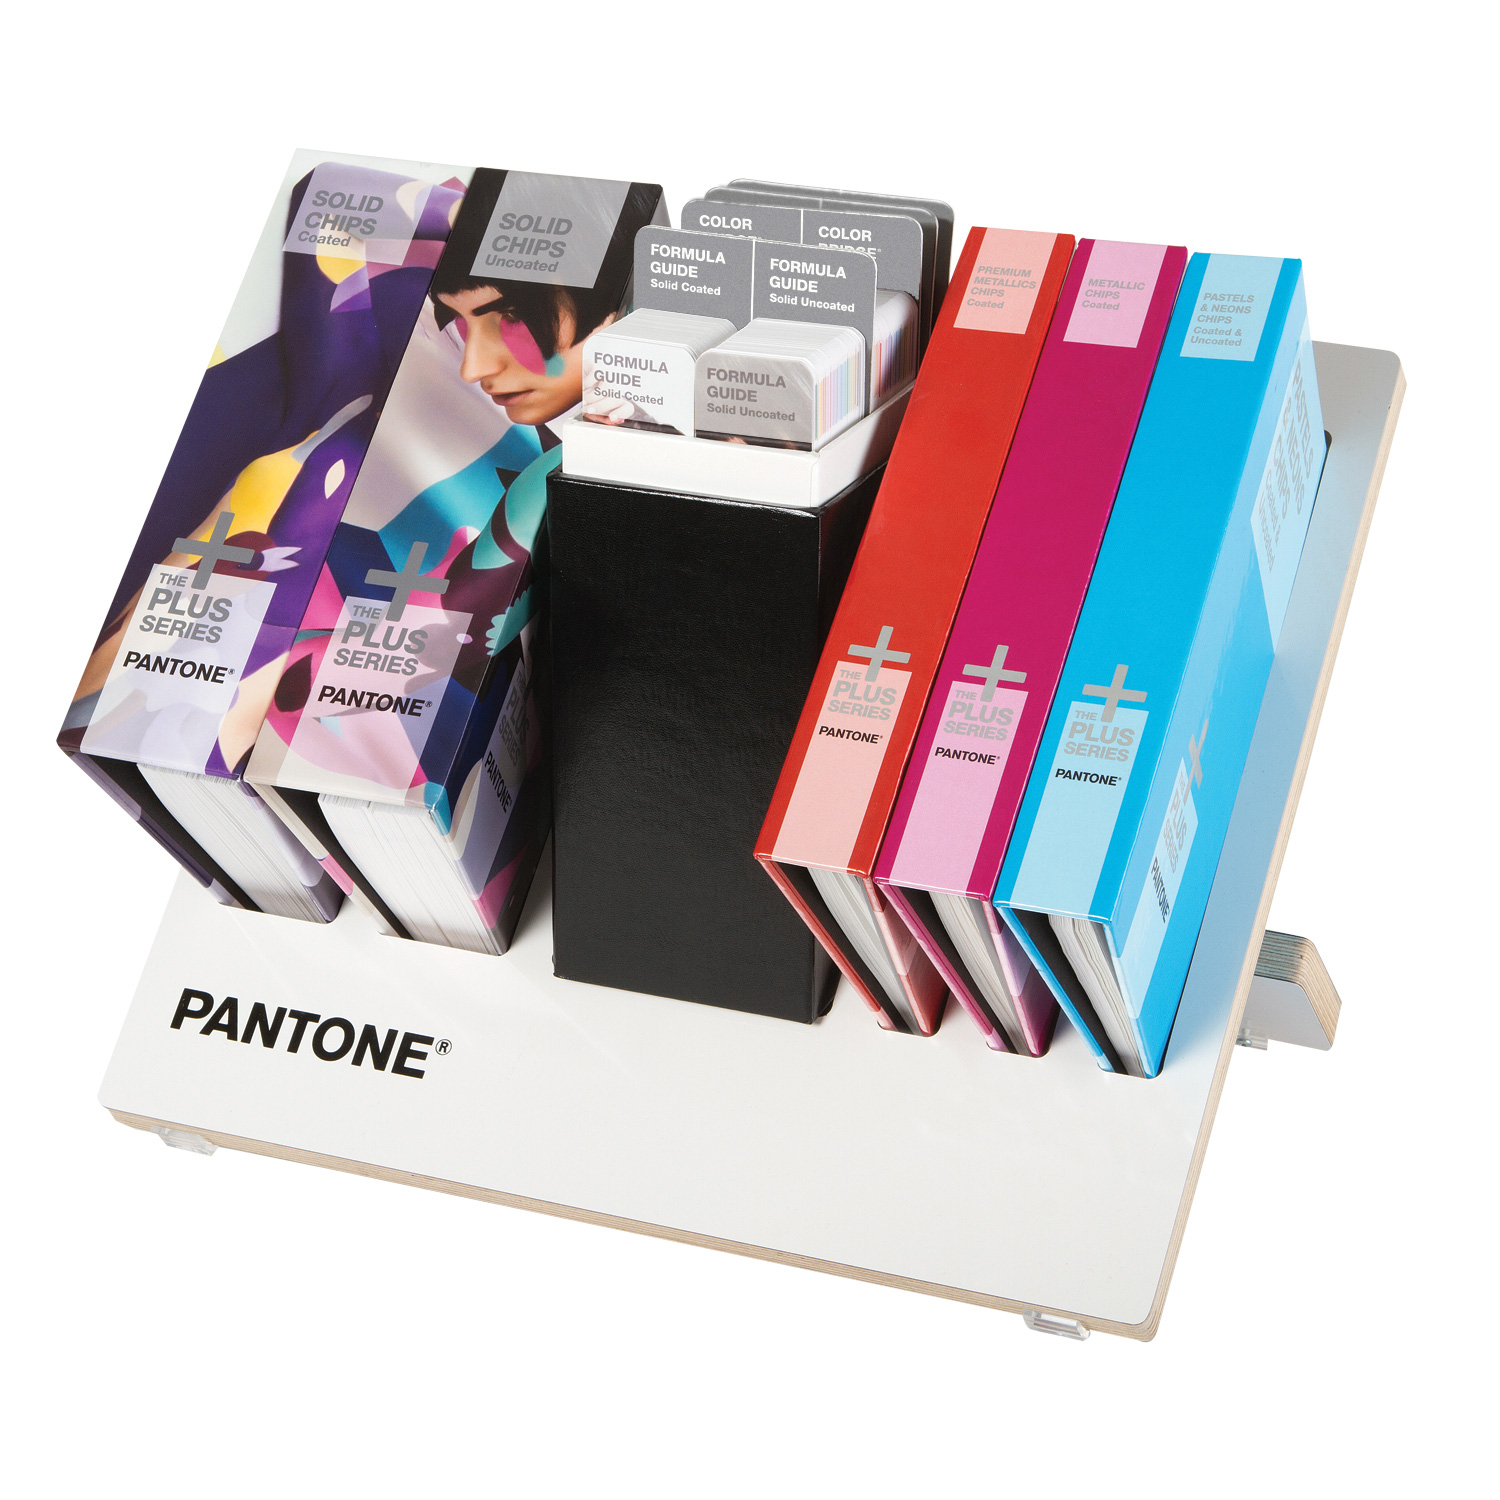 World S Largest Inventory Of Pantone Books And Guides At Low Prices